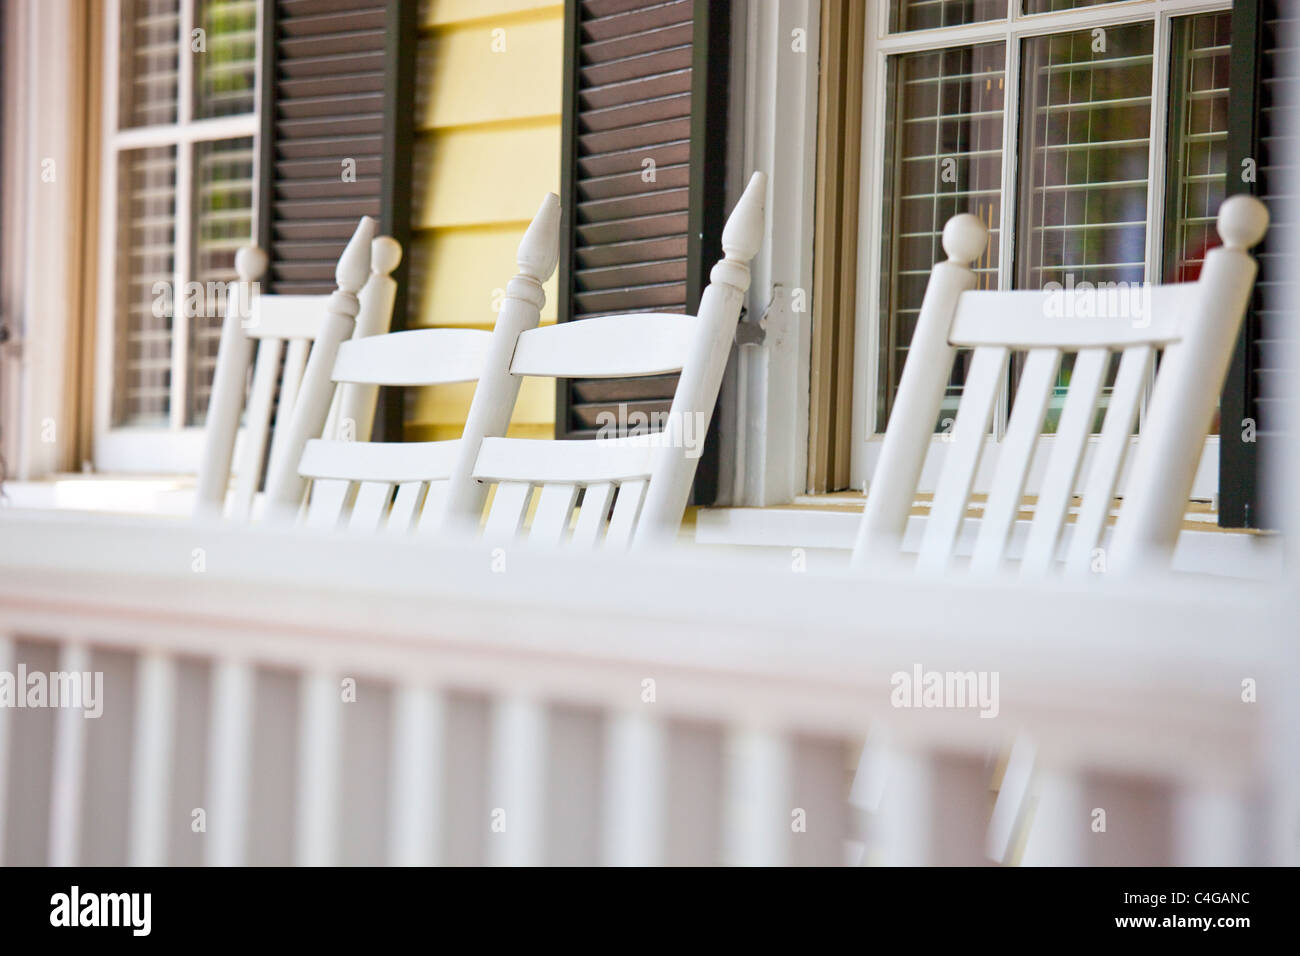 Rocking chairs on a front porch in Savannah, Georgia - Stock Image